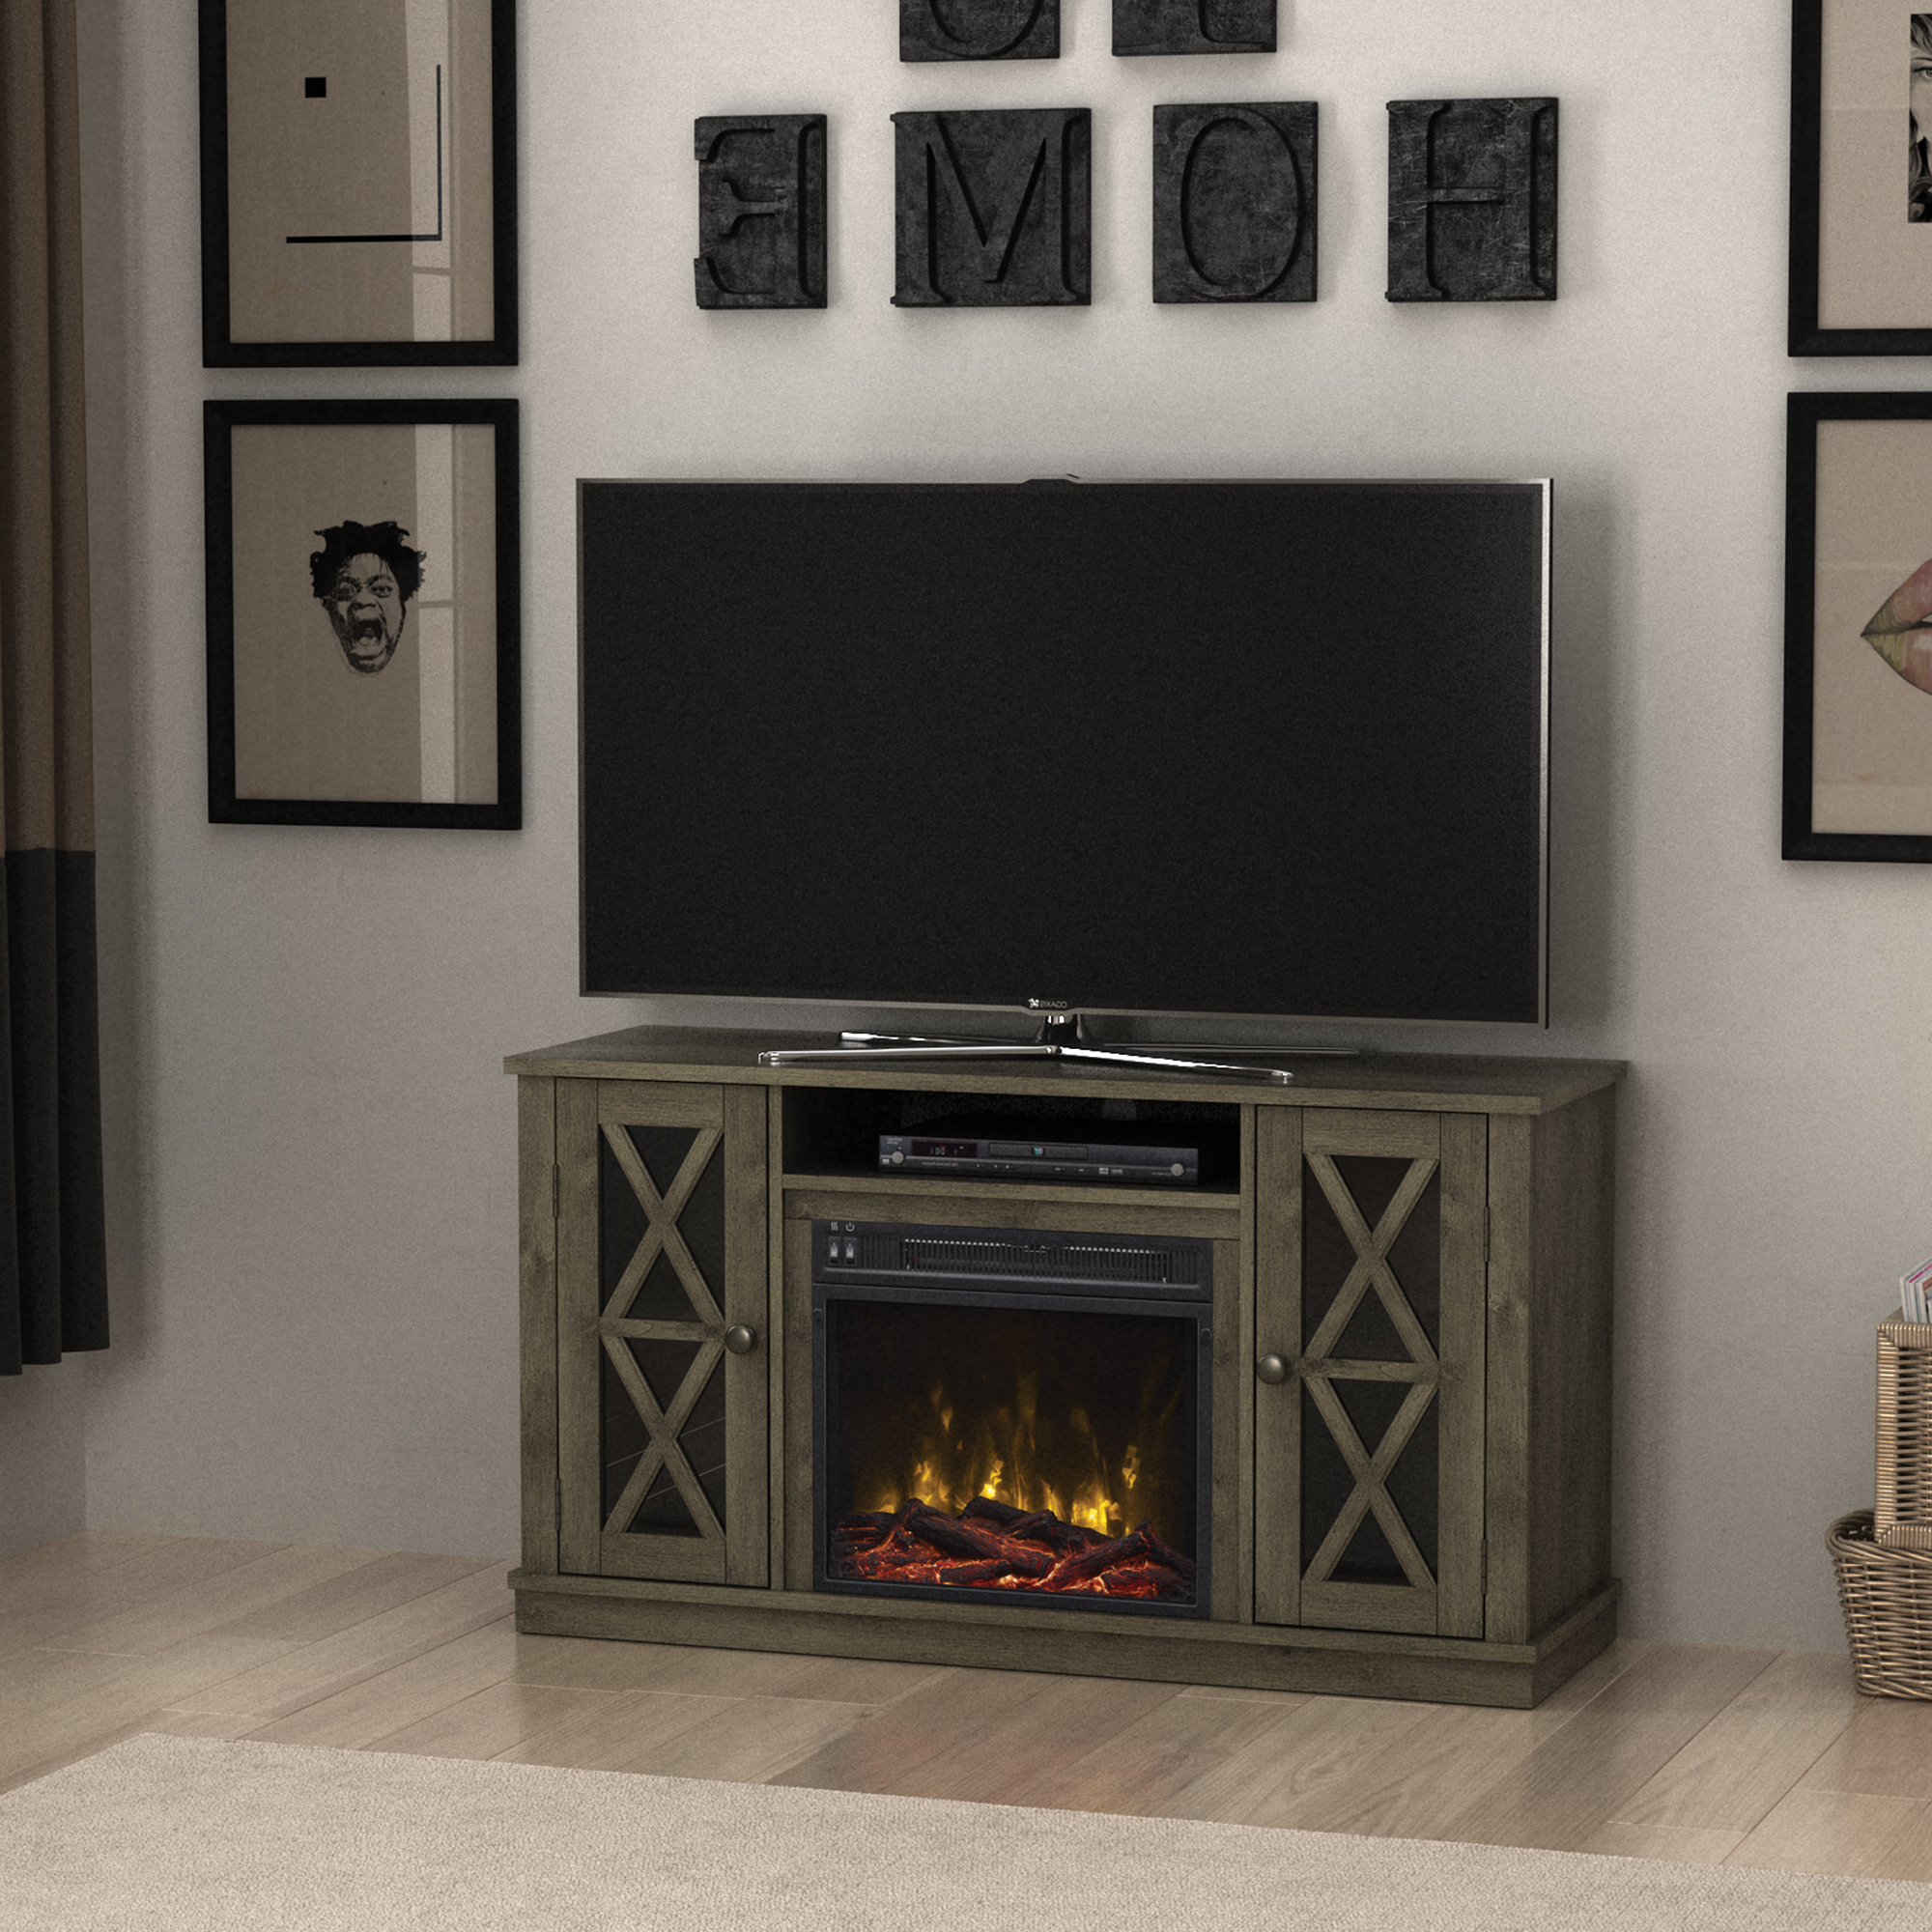 """Most Recent Stanton Ridge Spanish Gray Tv Stand For Tvs Up To 55"""" With For Baba Tv Stands For Tvs Up To 55"""" (View 18 of 25)"""